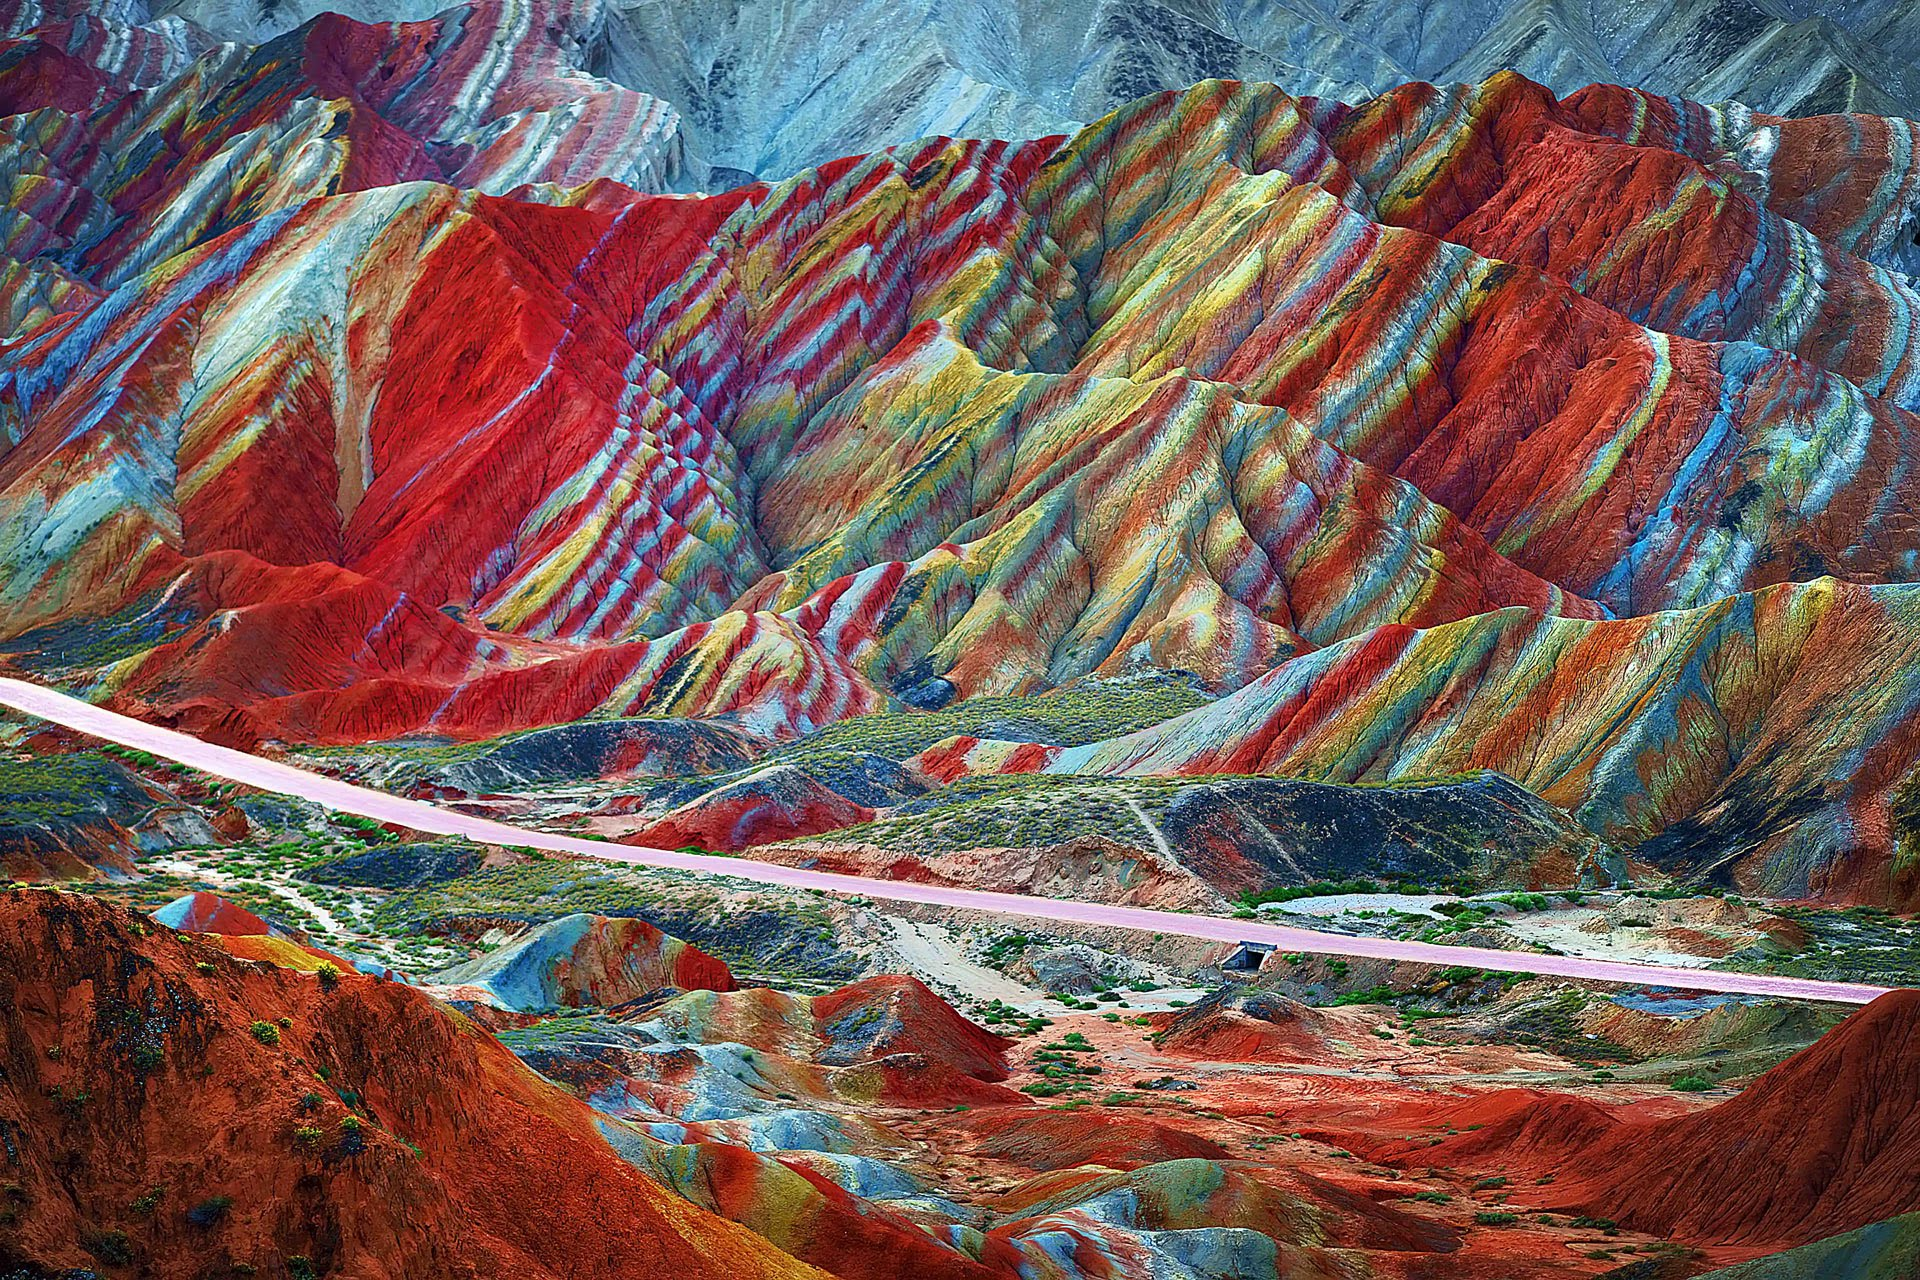 9-The rainbow mountains of Zhangye Danxia, China